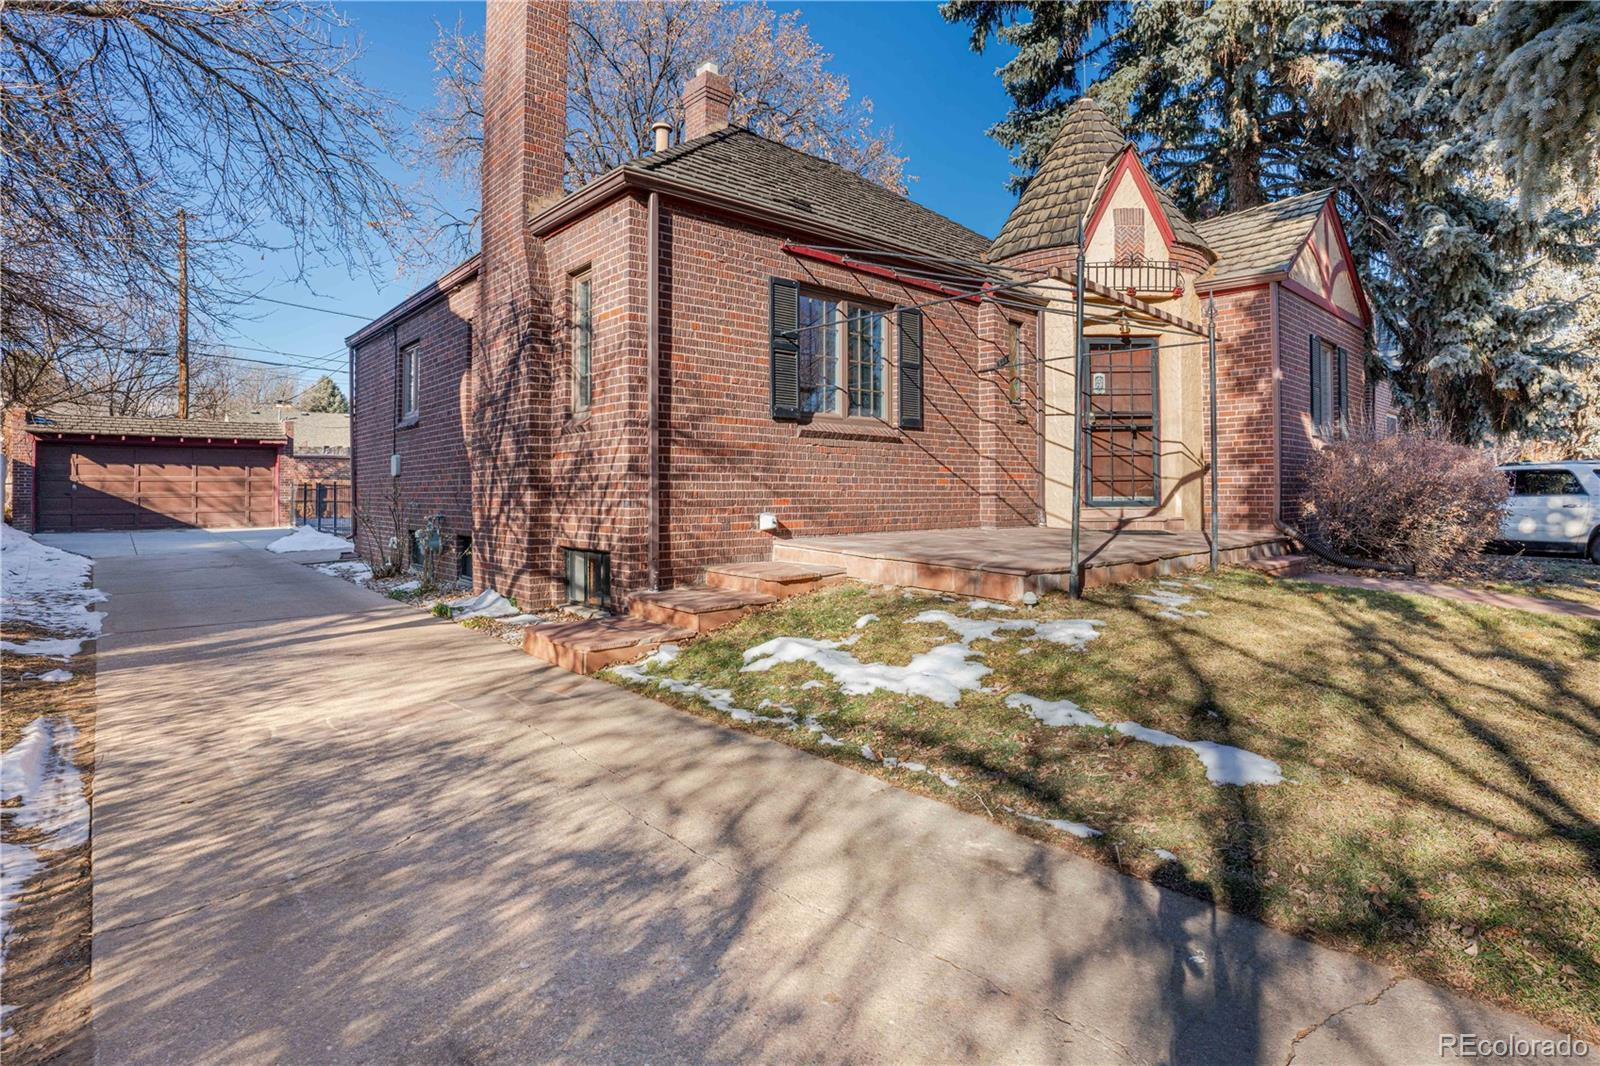 651 Fairfax Street, Denver, CO 80220 - #: 1763838